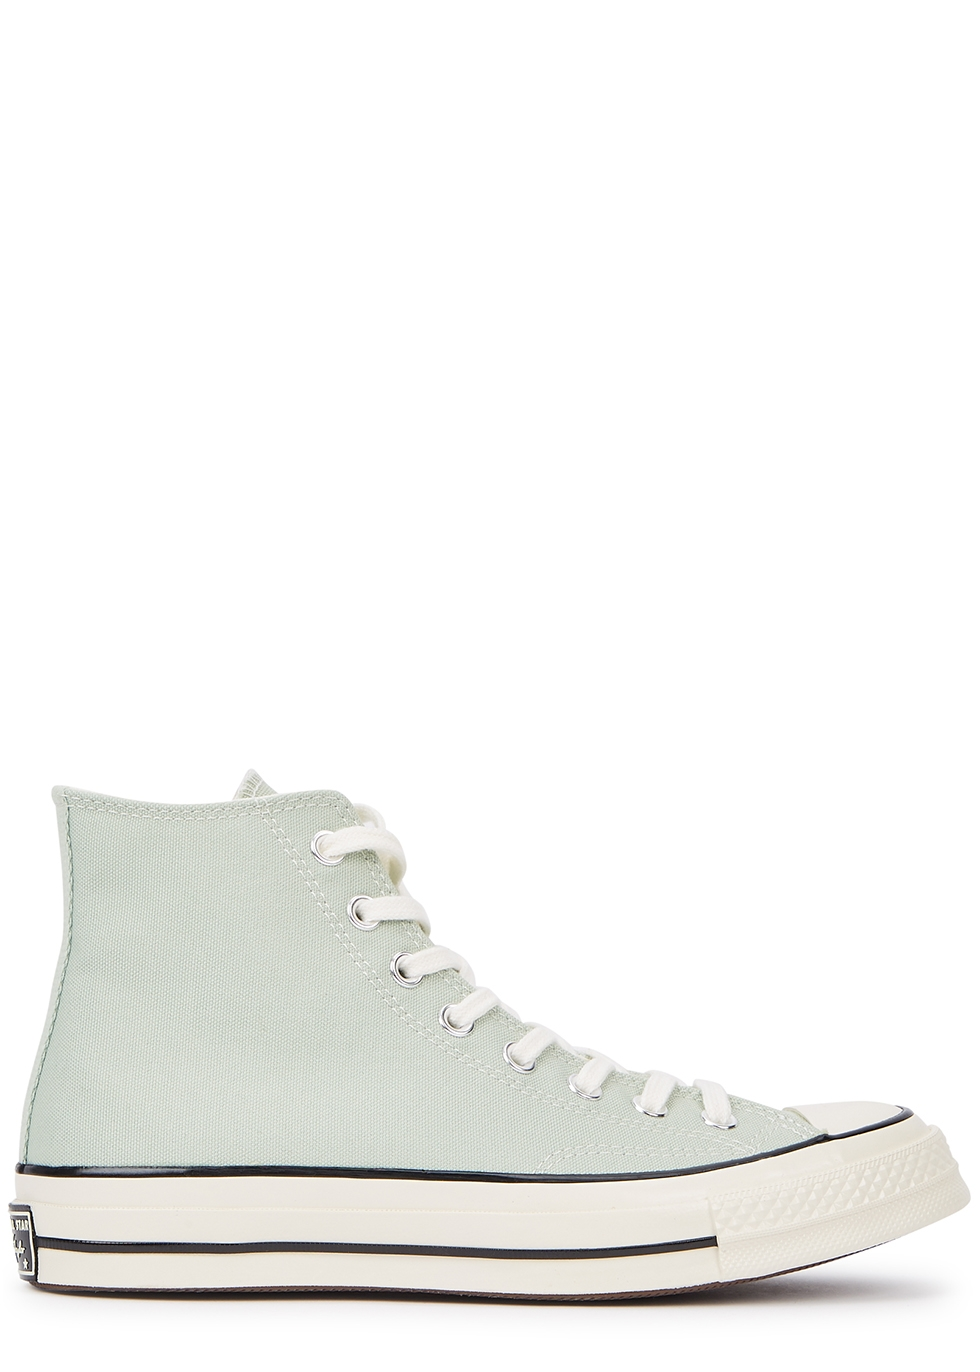 Chuck 70 mint canvas hi-top sneakers